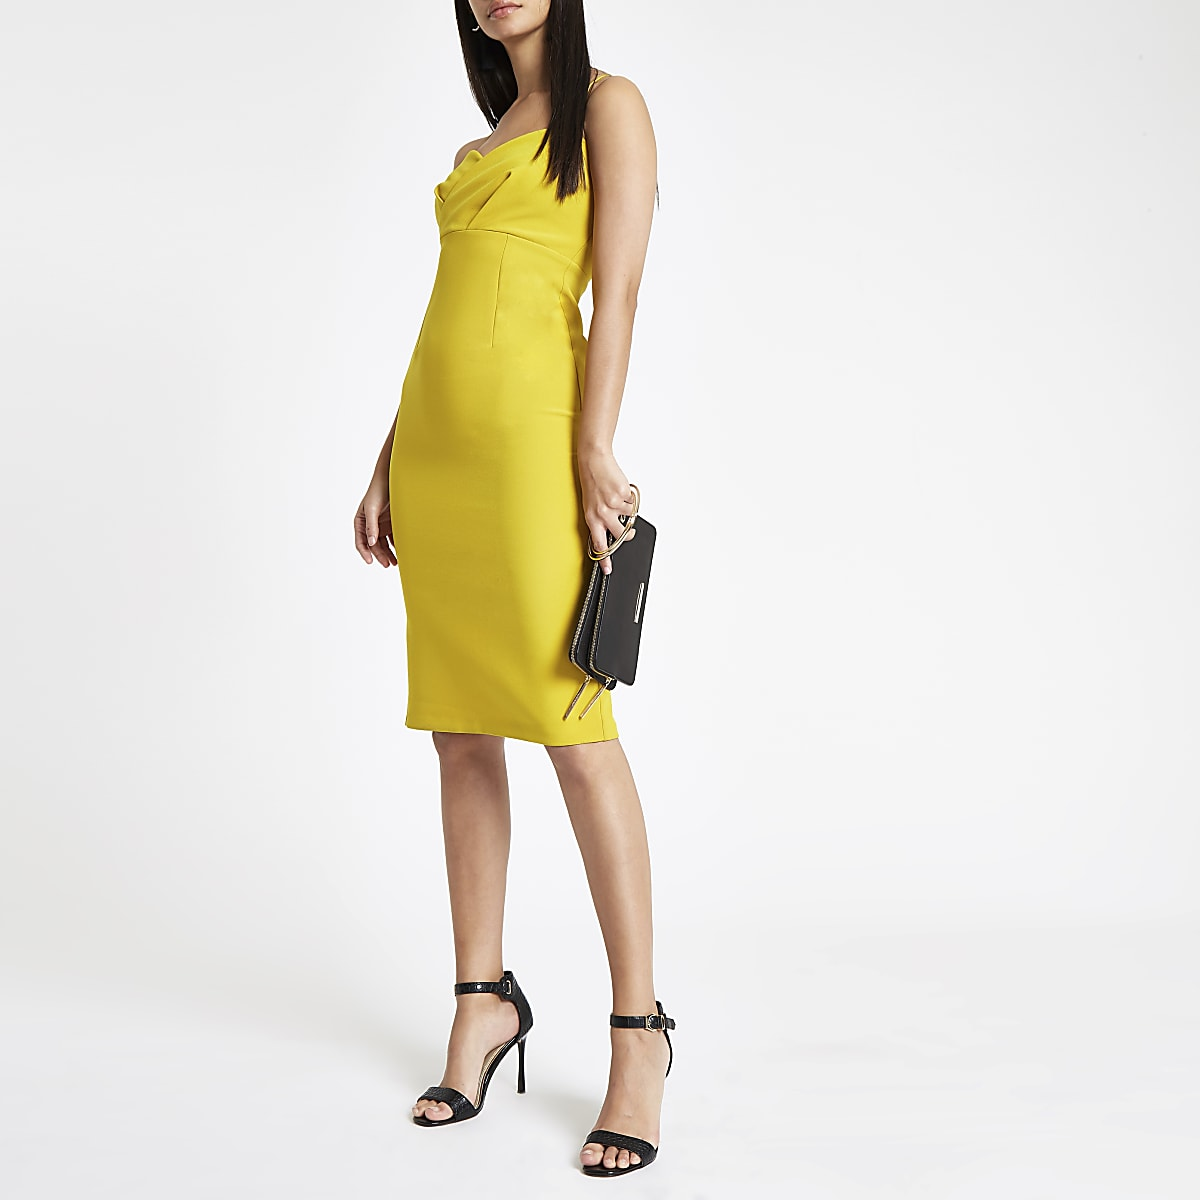 Yellow tulip style bodycon midi dress